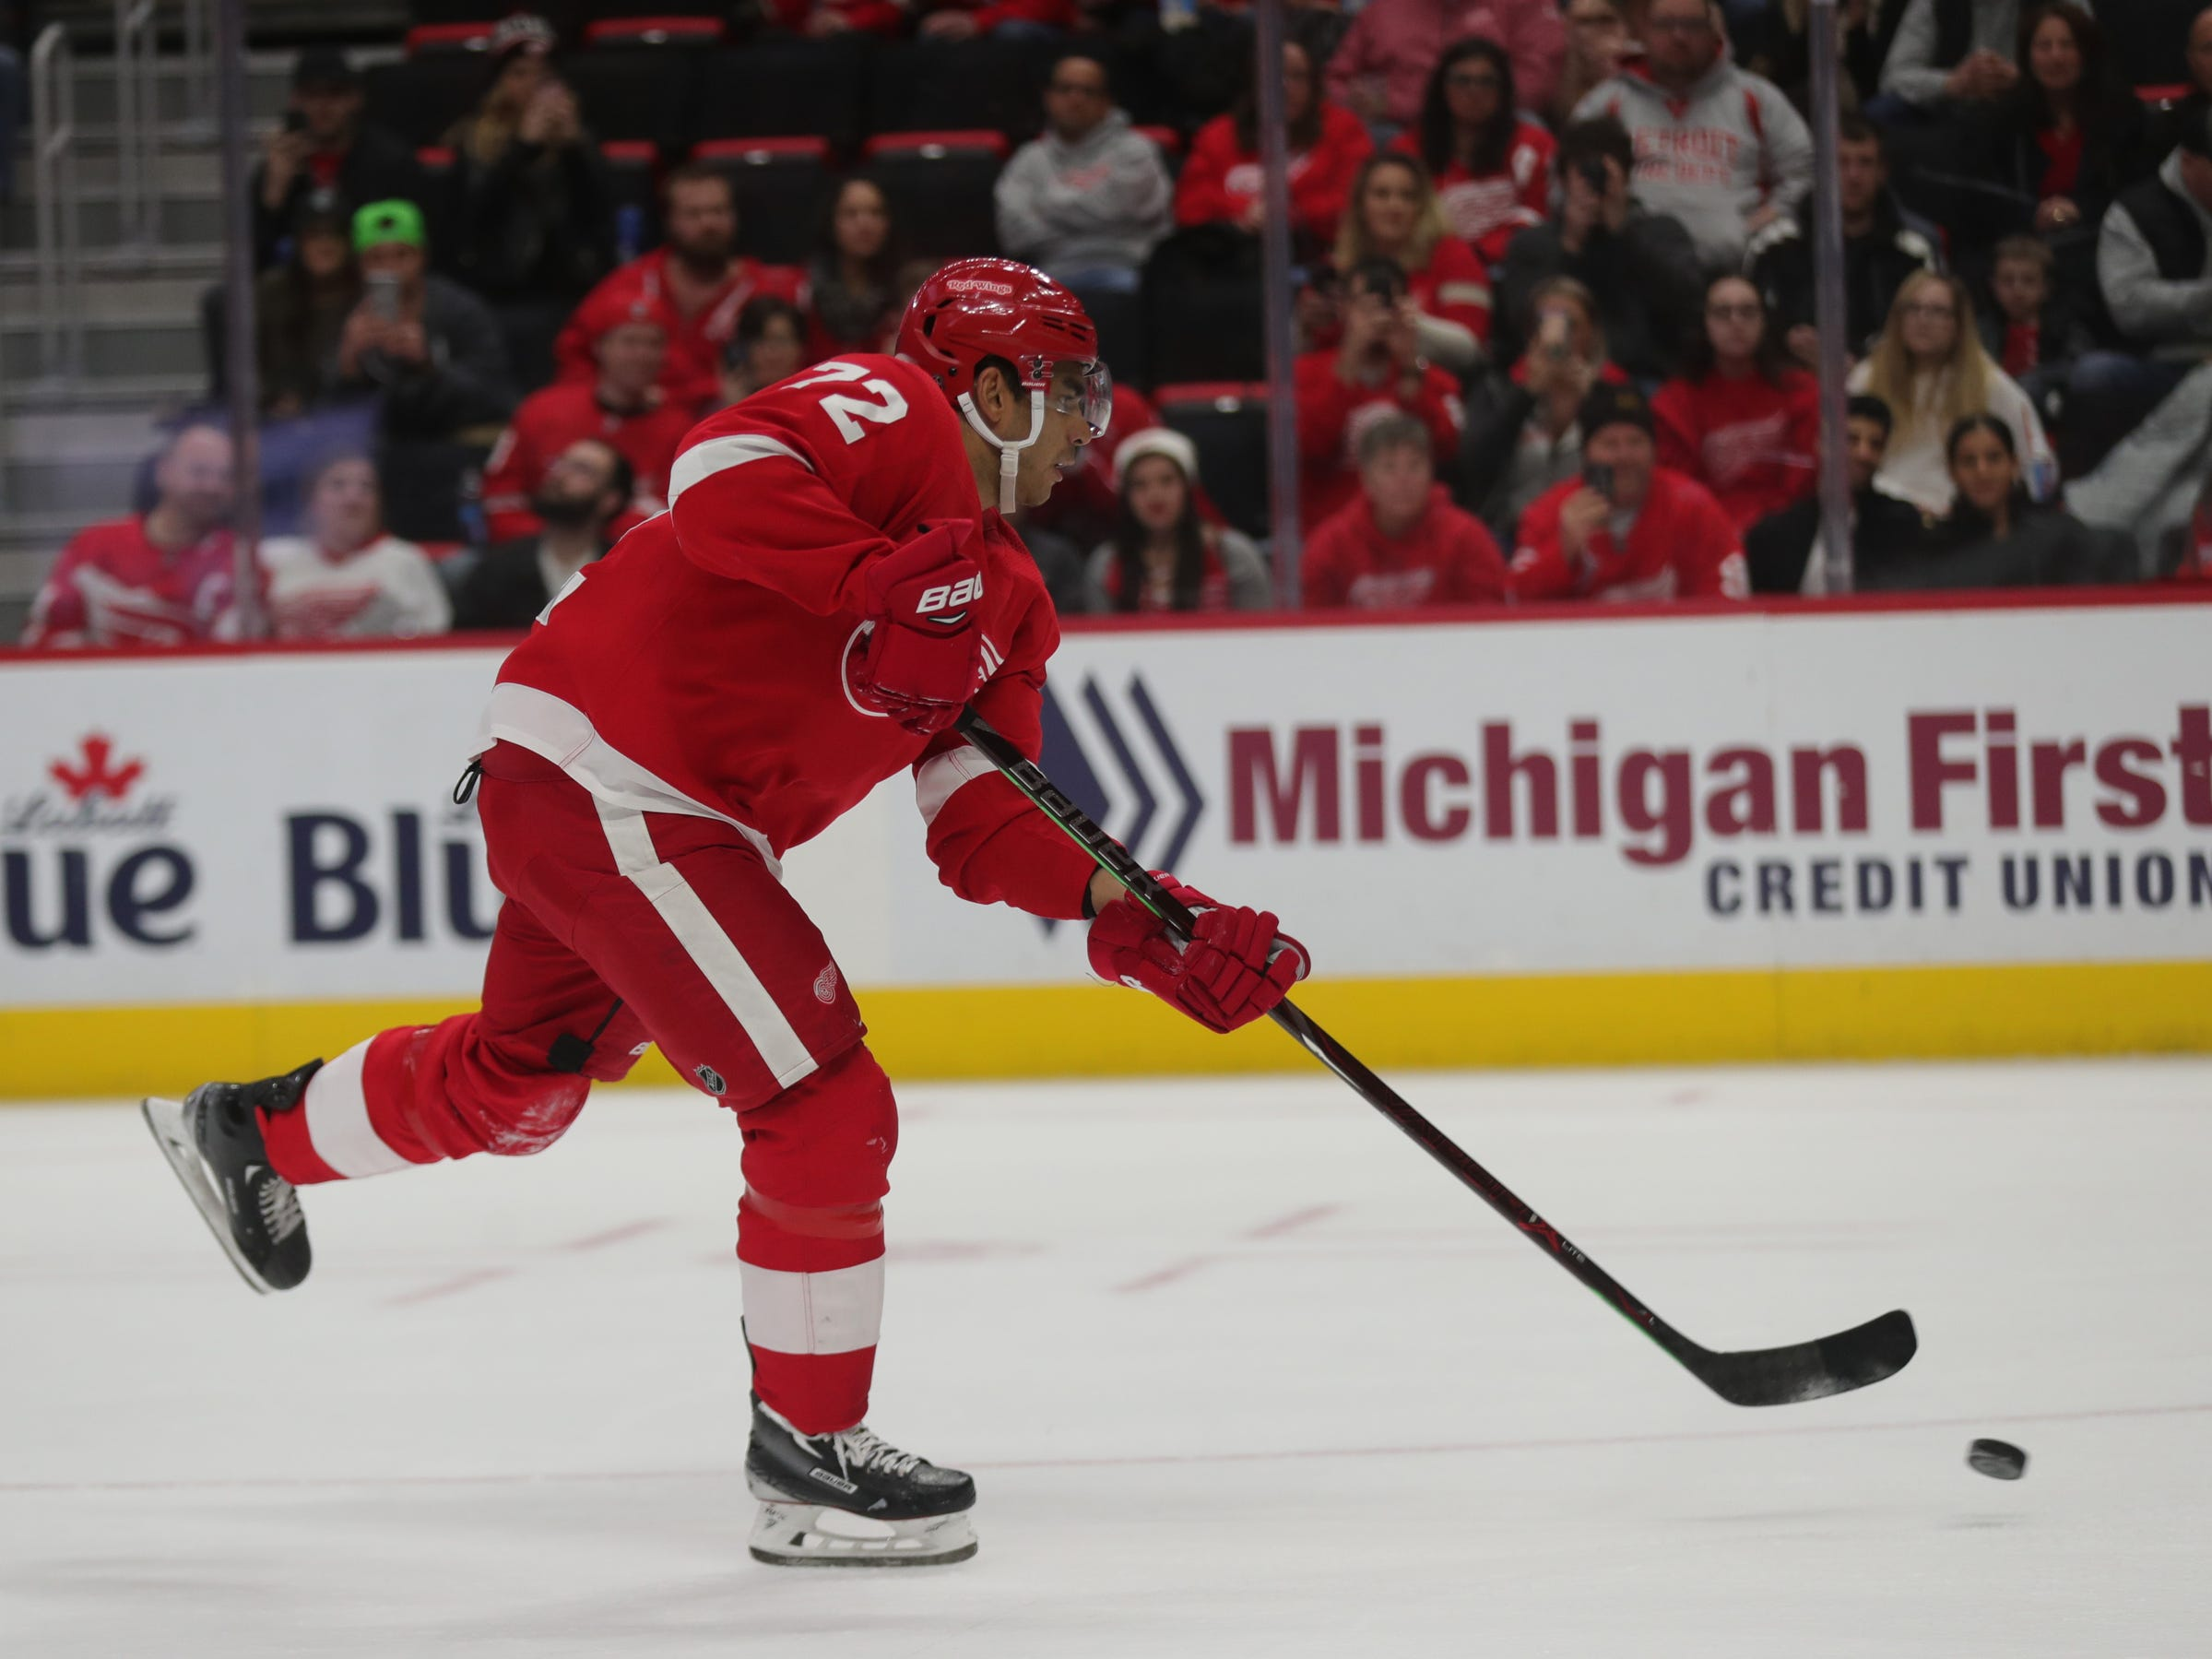 The Red Wings' Andreas Athanasiou scores on a penalty shot in the first period on Feb. 14, 2019 at Little Caesars Arena in Detroit.